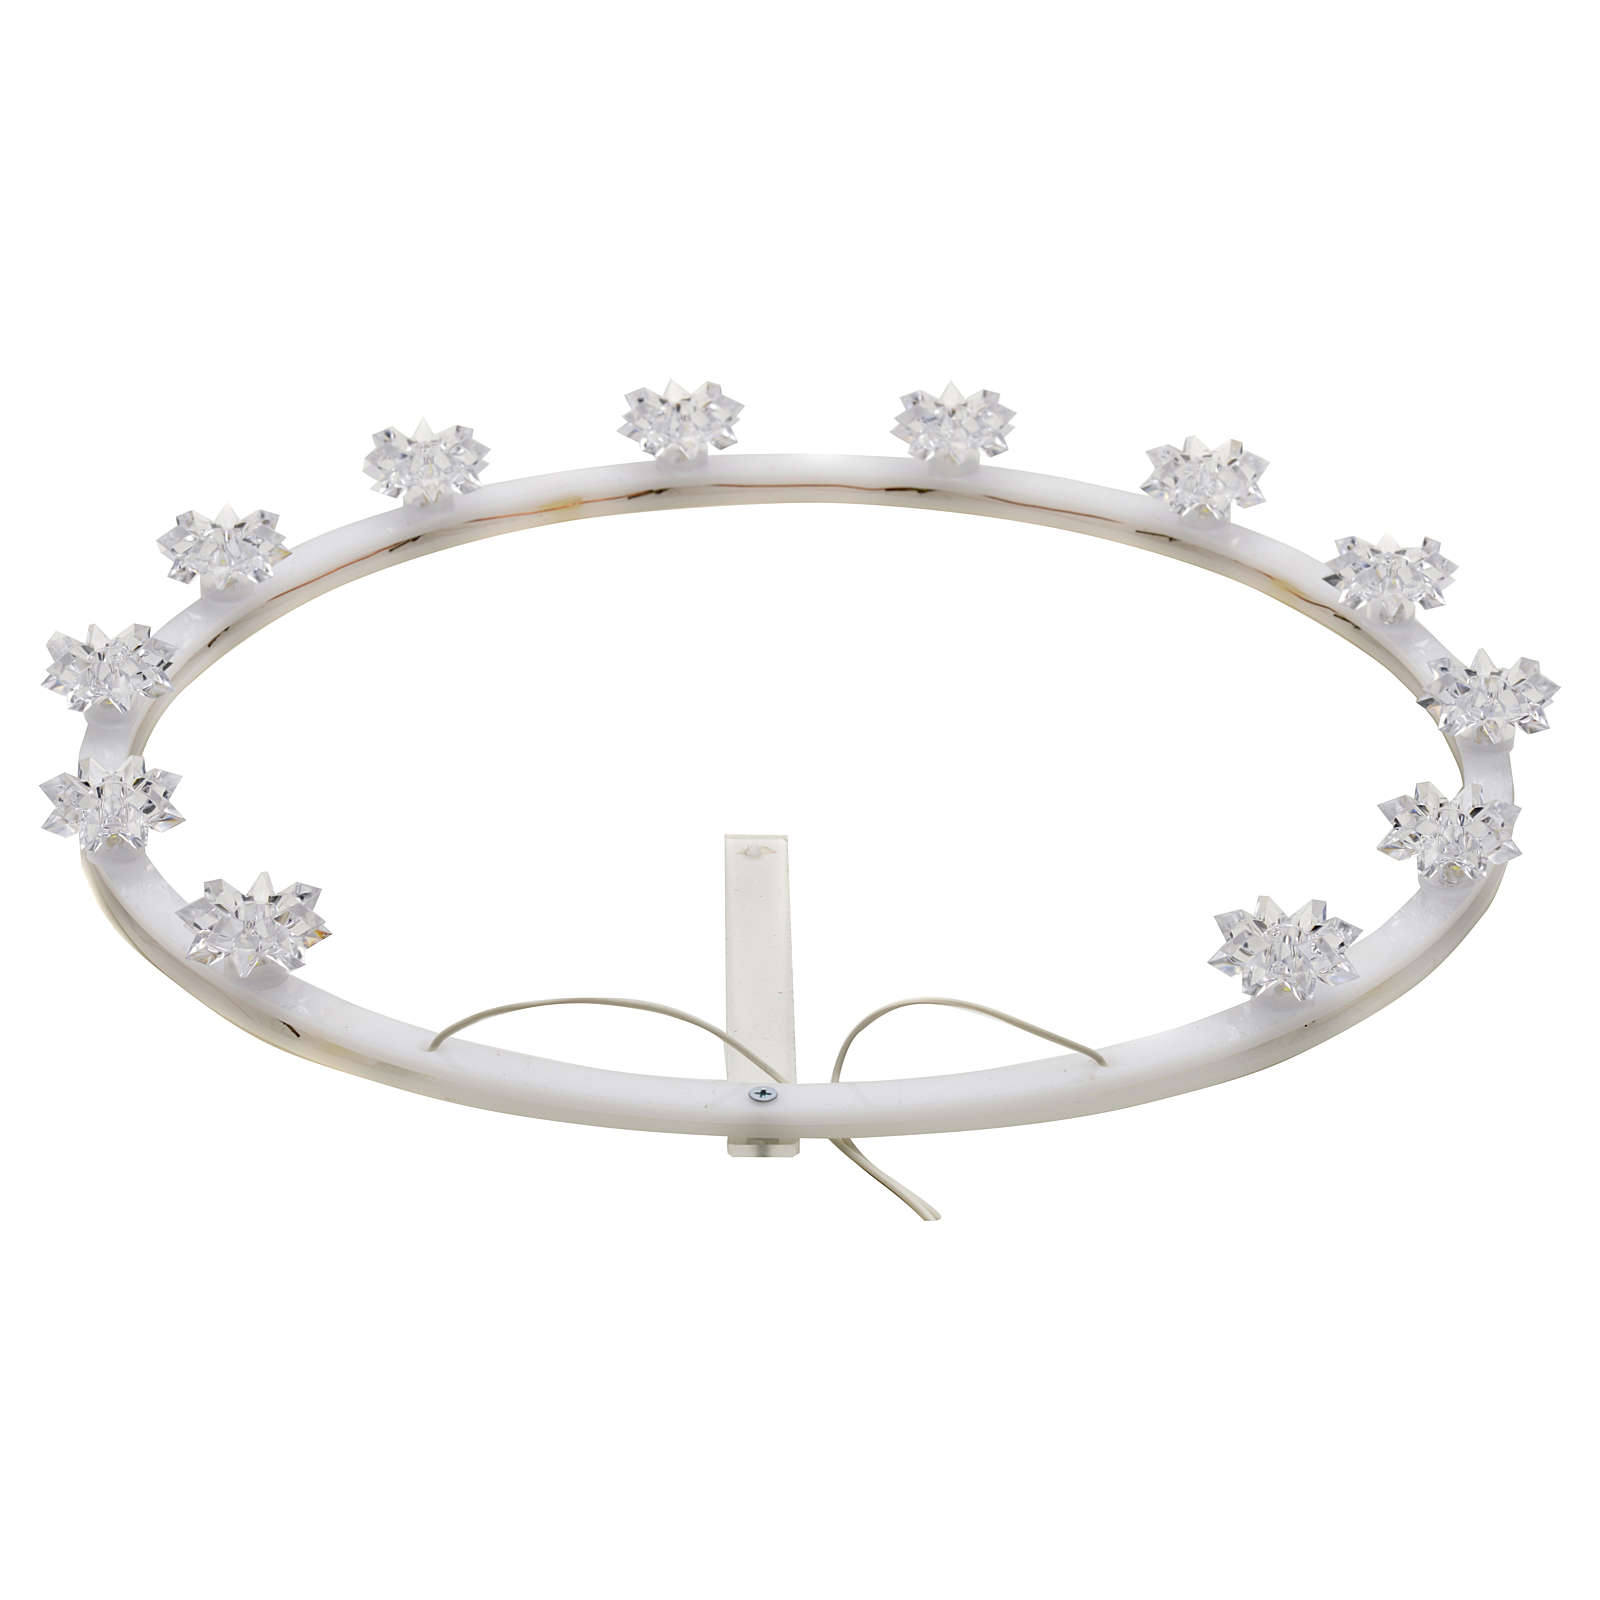 Plexiglas luminous halo with flowers 3